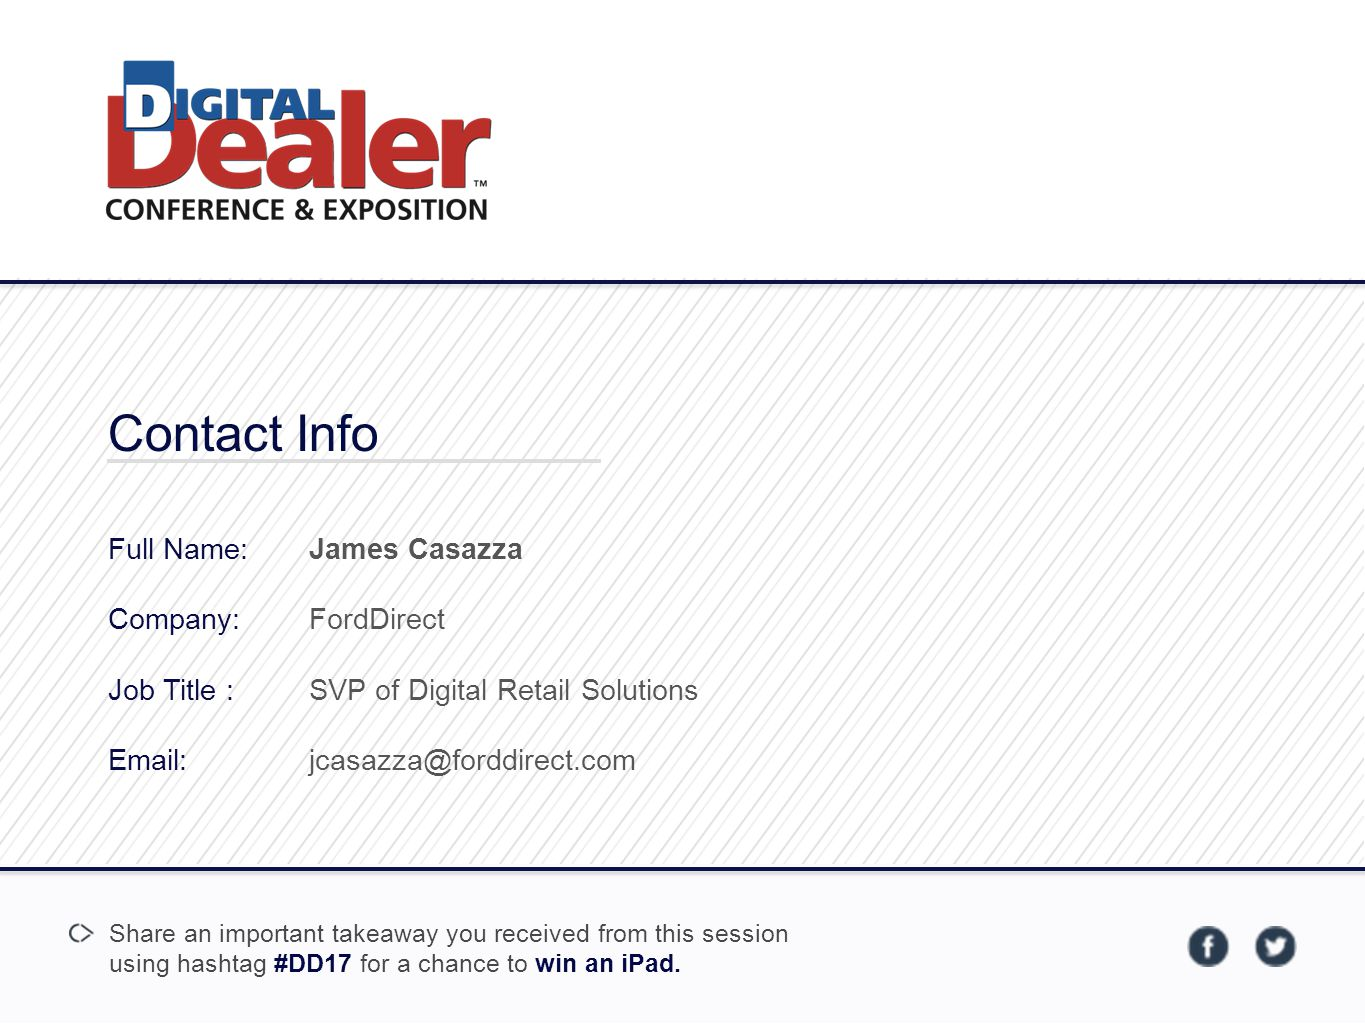 Contact Info Full Name: Company: Job Title : Email: James Casazza FordDirect SVP of Digital Retail Solutions jcasazza@forddirect.com Share an important takeaway you received from this session using hashtag #DD17 for a chance to win an iPad.